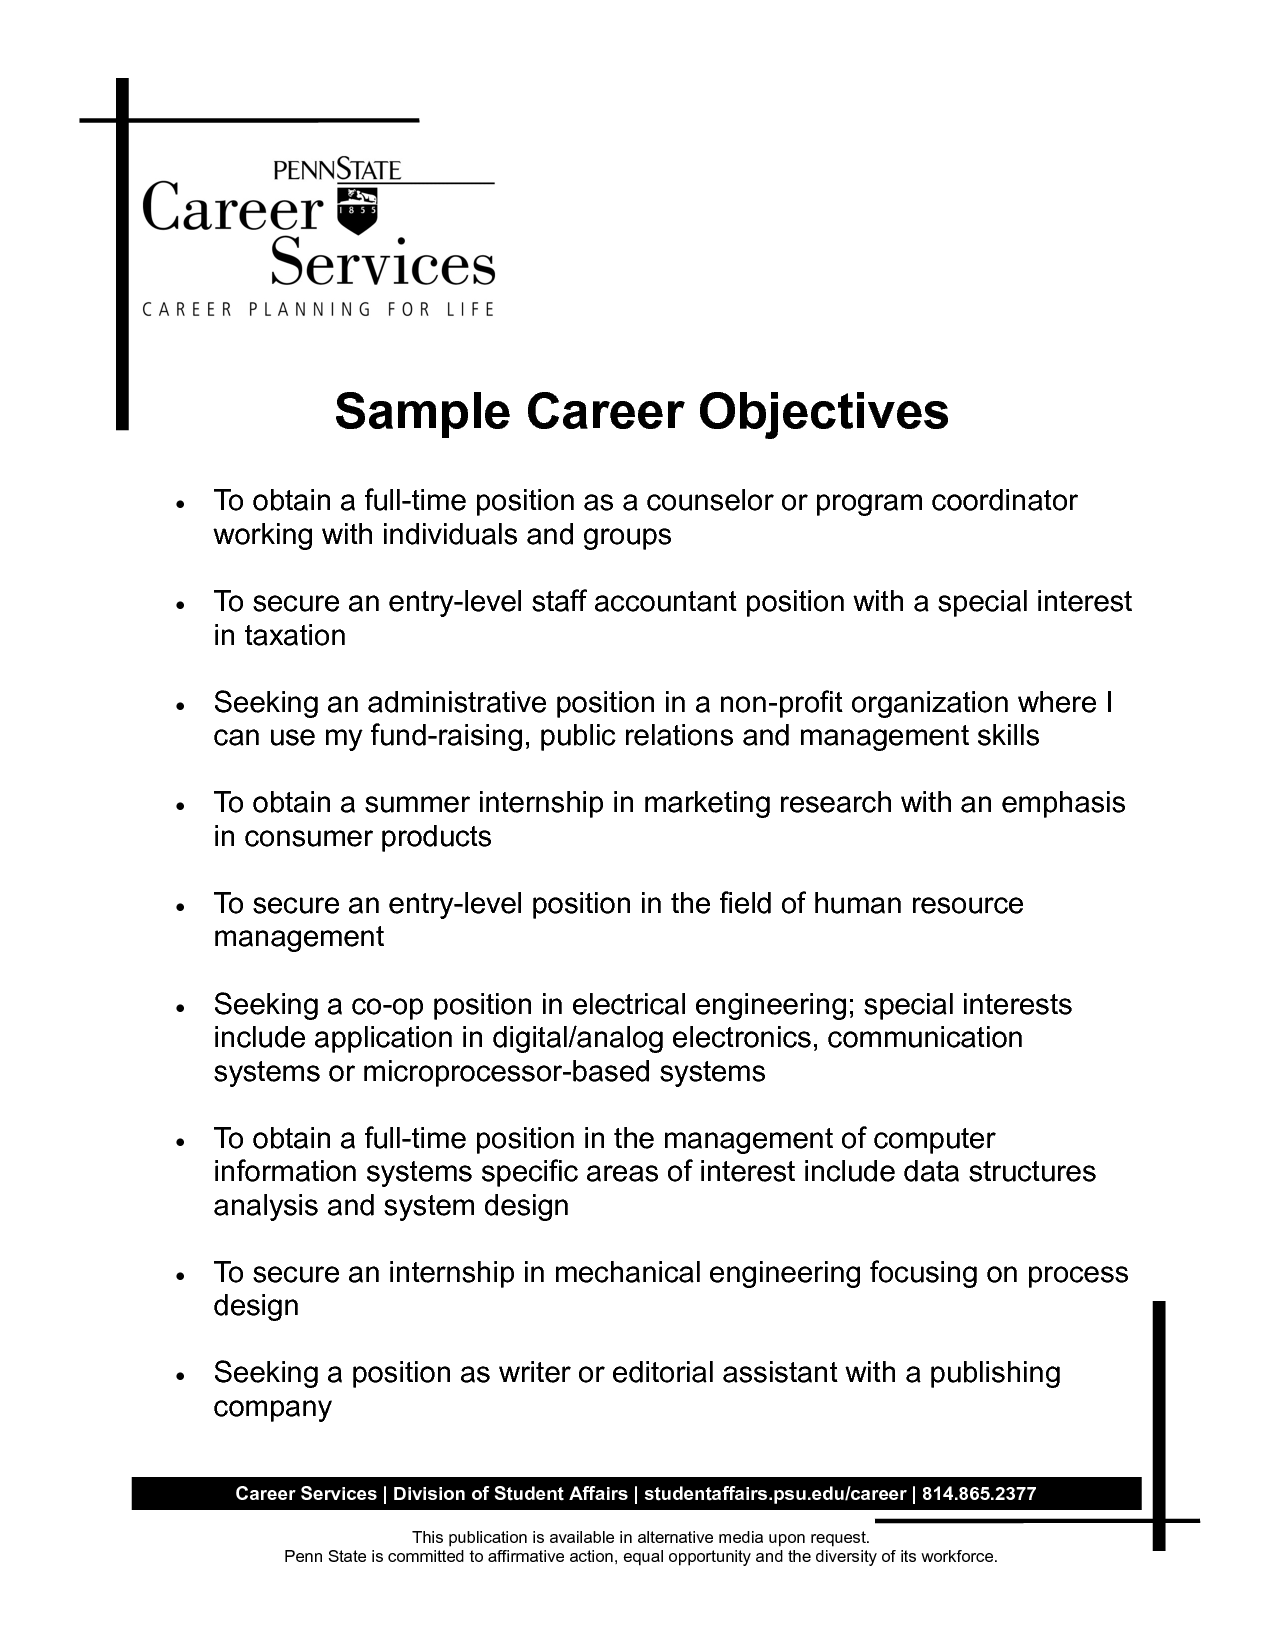 how to write career objective with sample